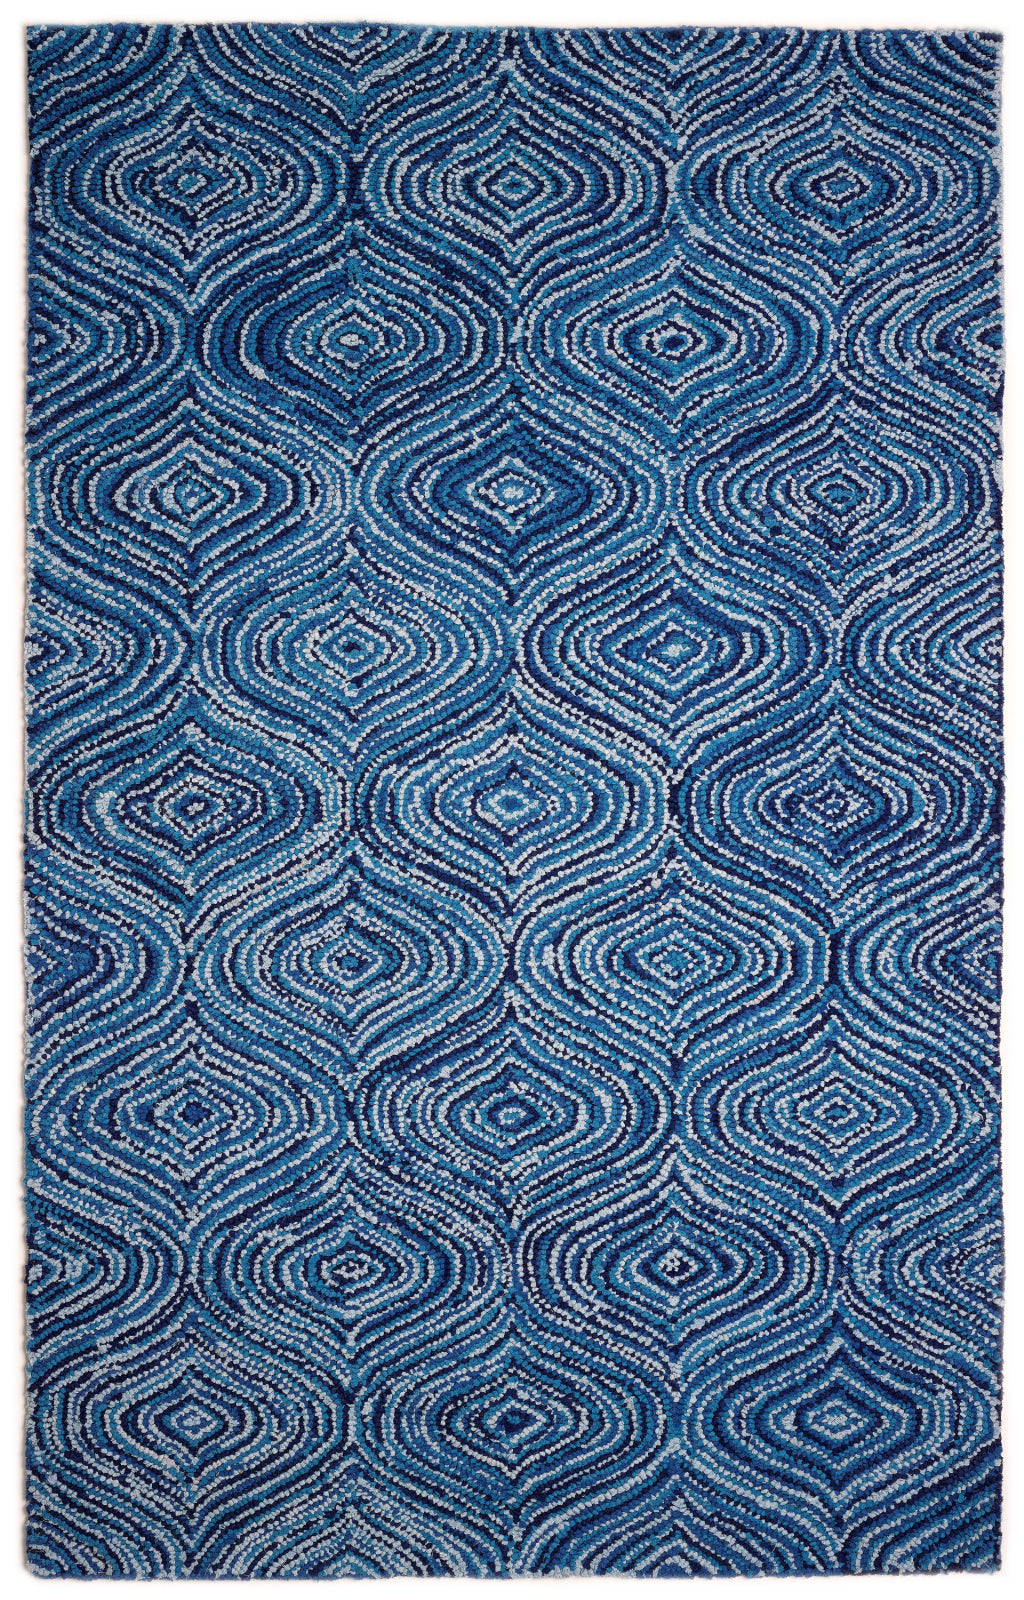 JazzyFloors Atlas 1007 Lantern Blue Skies Area Rug main image